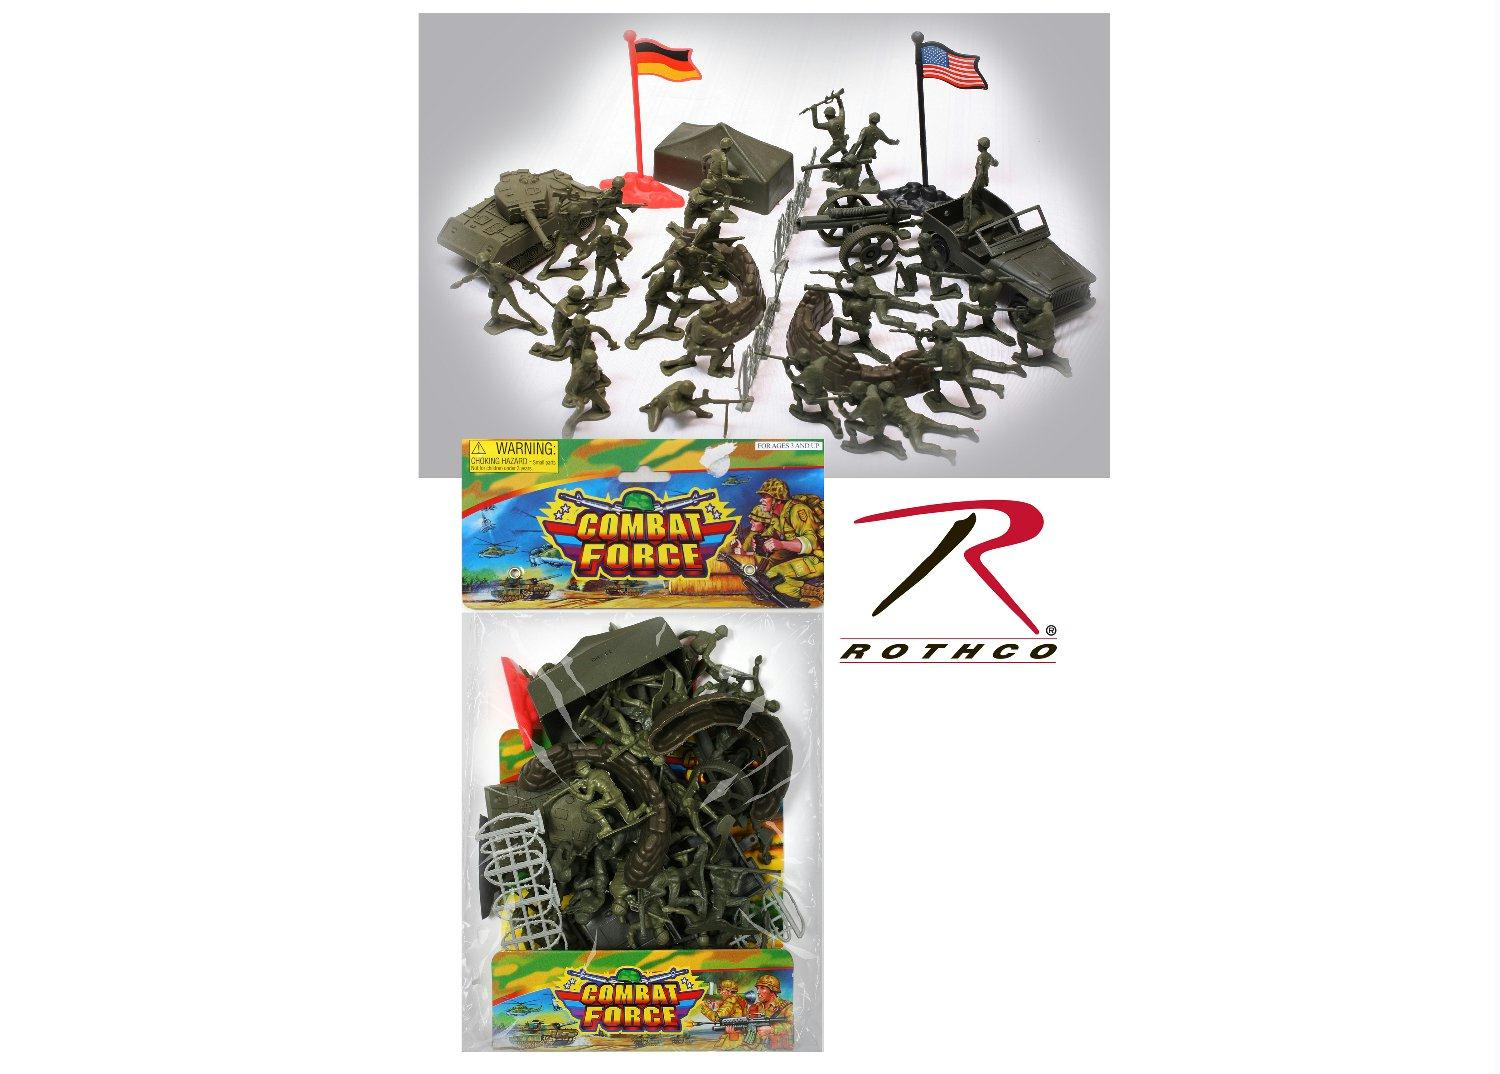 Combat Force Soldier Play Set